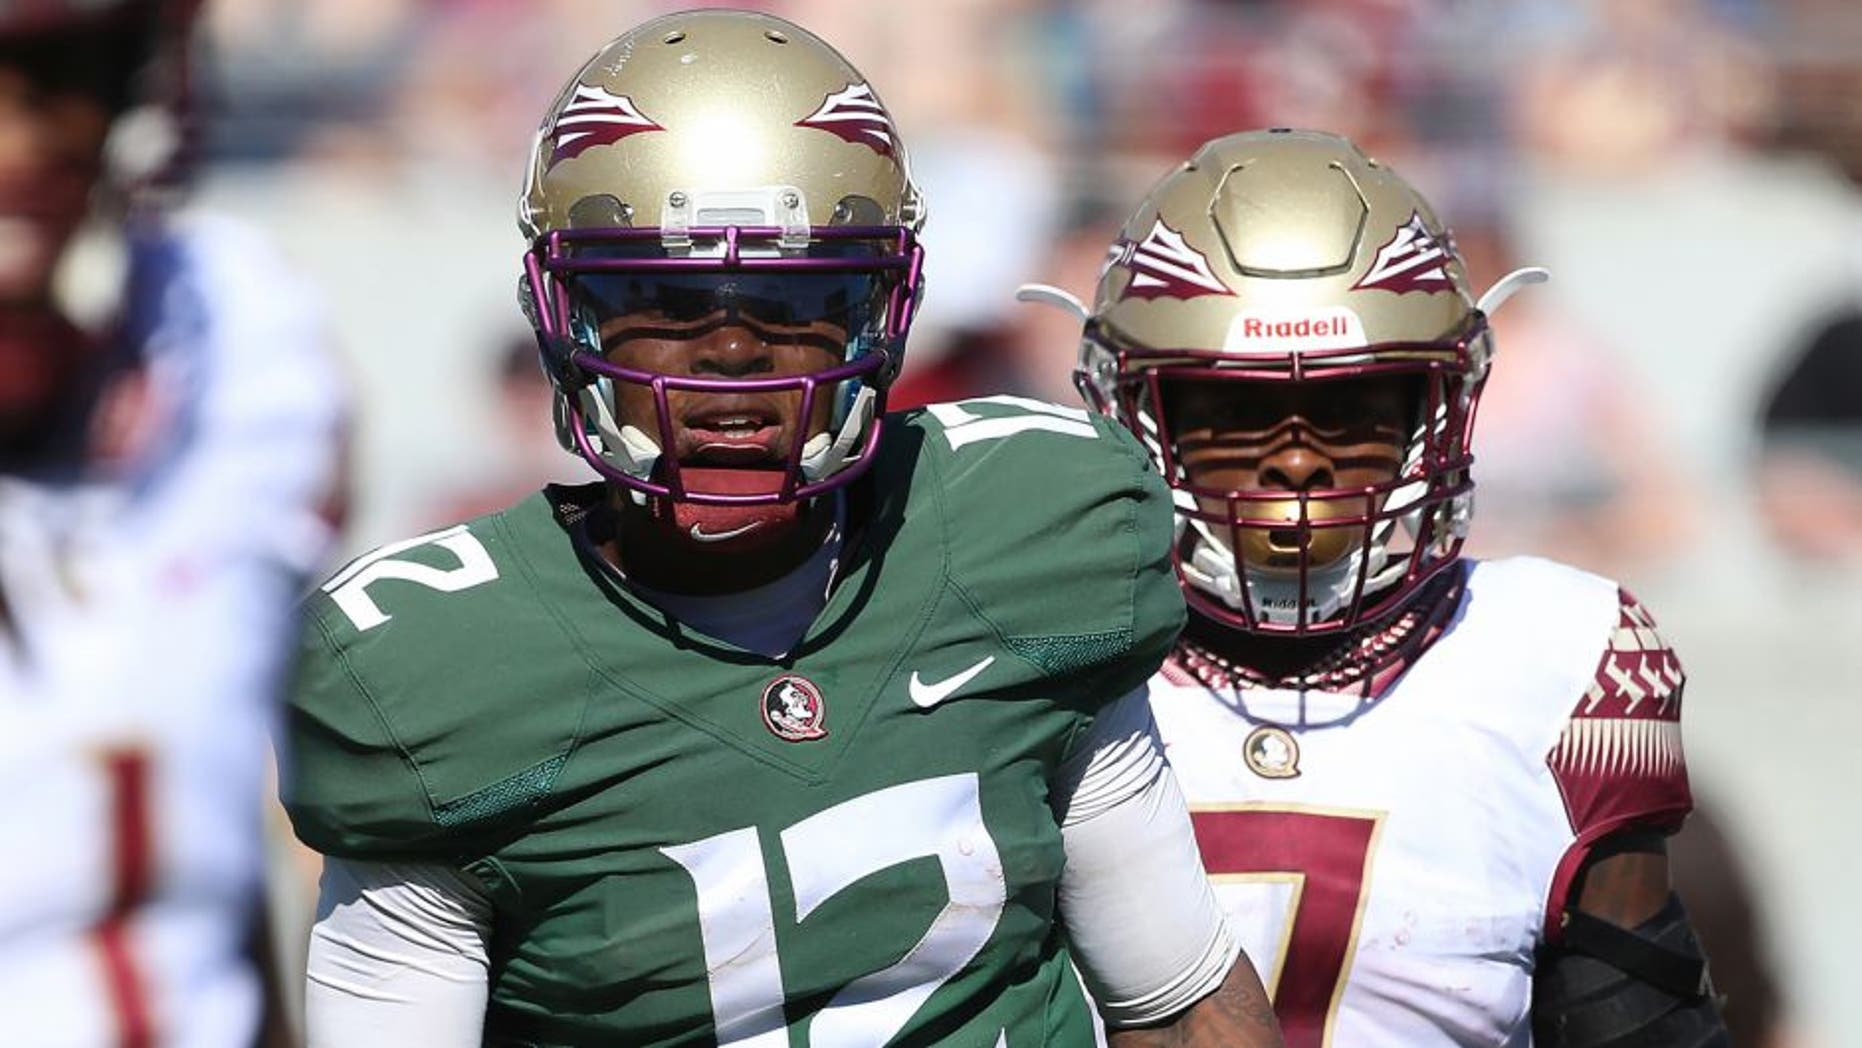 Apr 9, 2016; Orlando, FL, USA; Florida State Seminoles quarterback Deondre Francois (12) and running back Mario Pender (7) look to the sideline during the Florida State spring game at the Citrus Bowl. Mandatory Credit: Logan Bowles-USA TODAY Sports